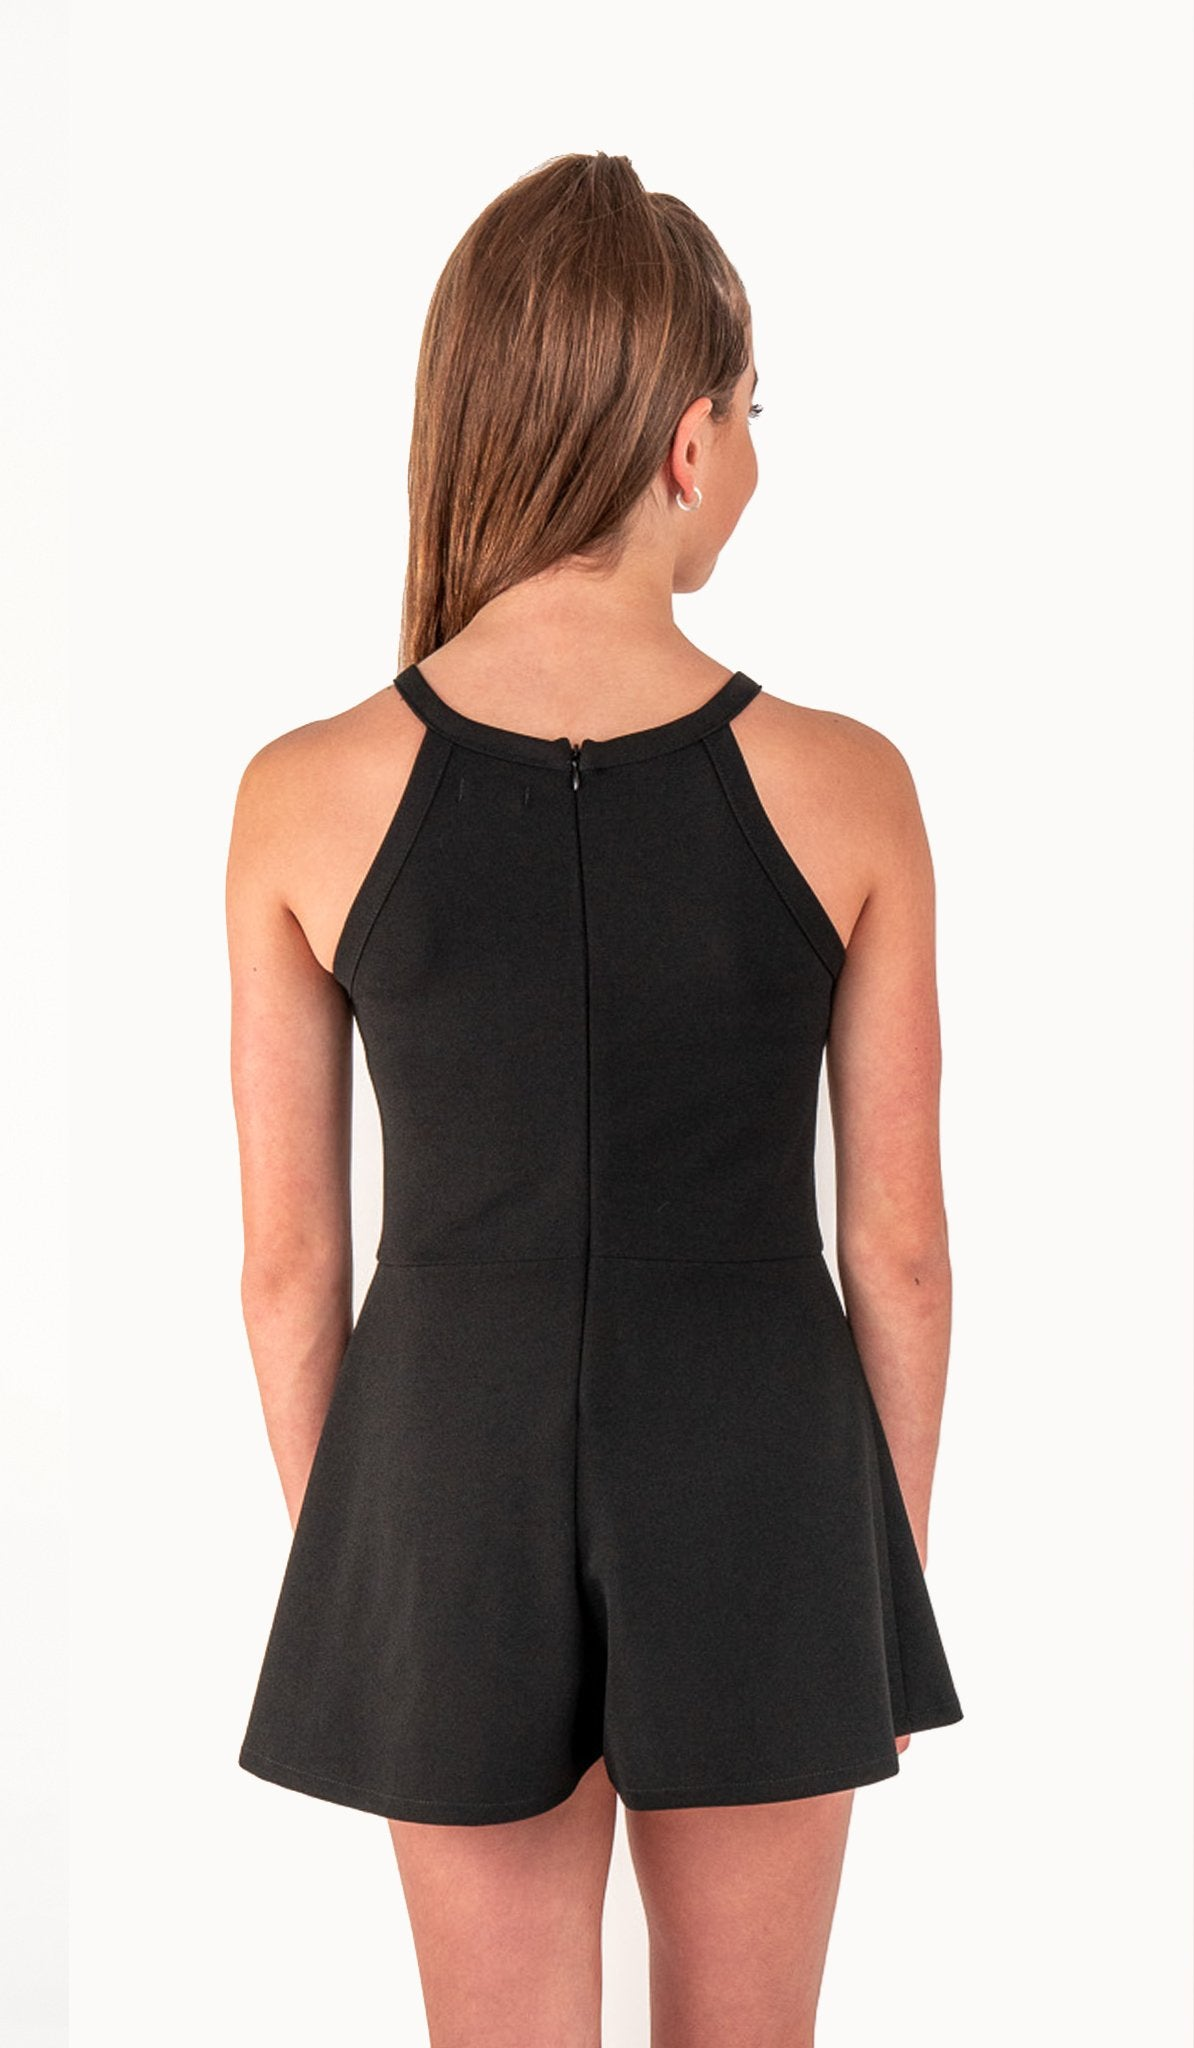 The Kelly Romper | Black stretch textured knit romper with lace yoke and zipper at back